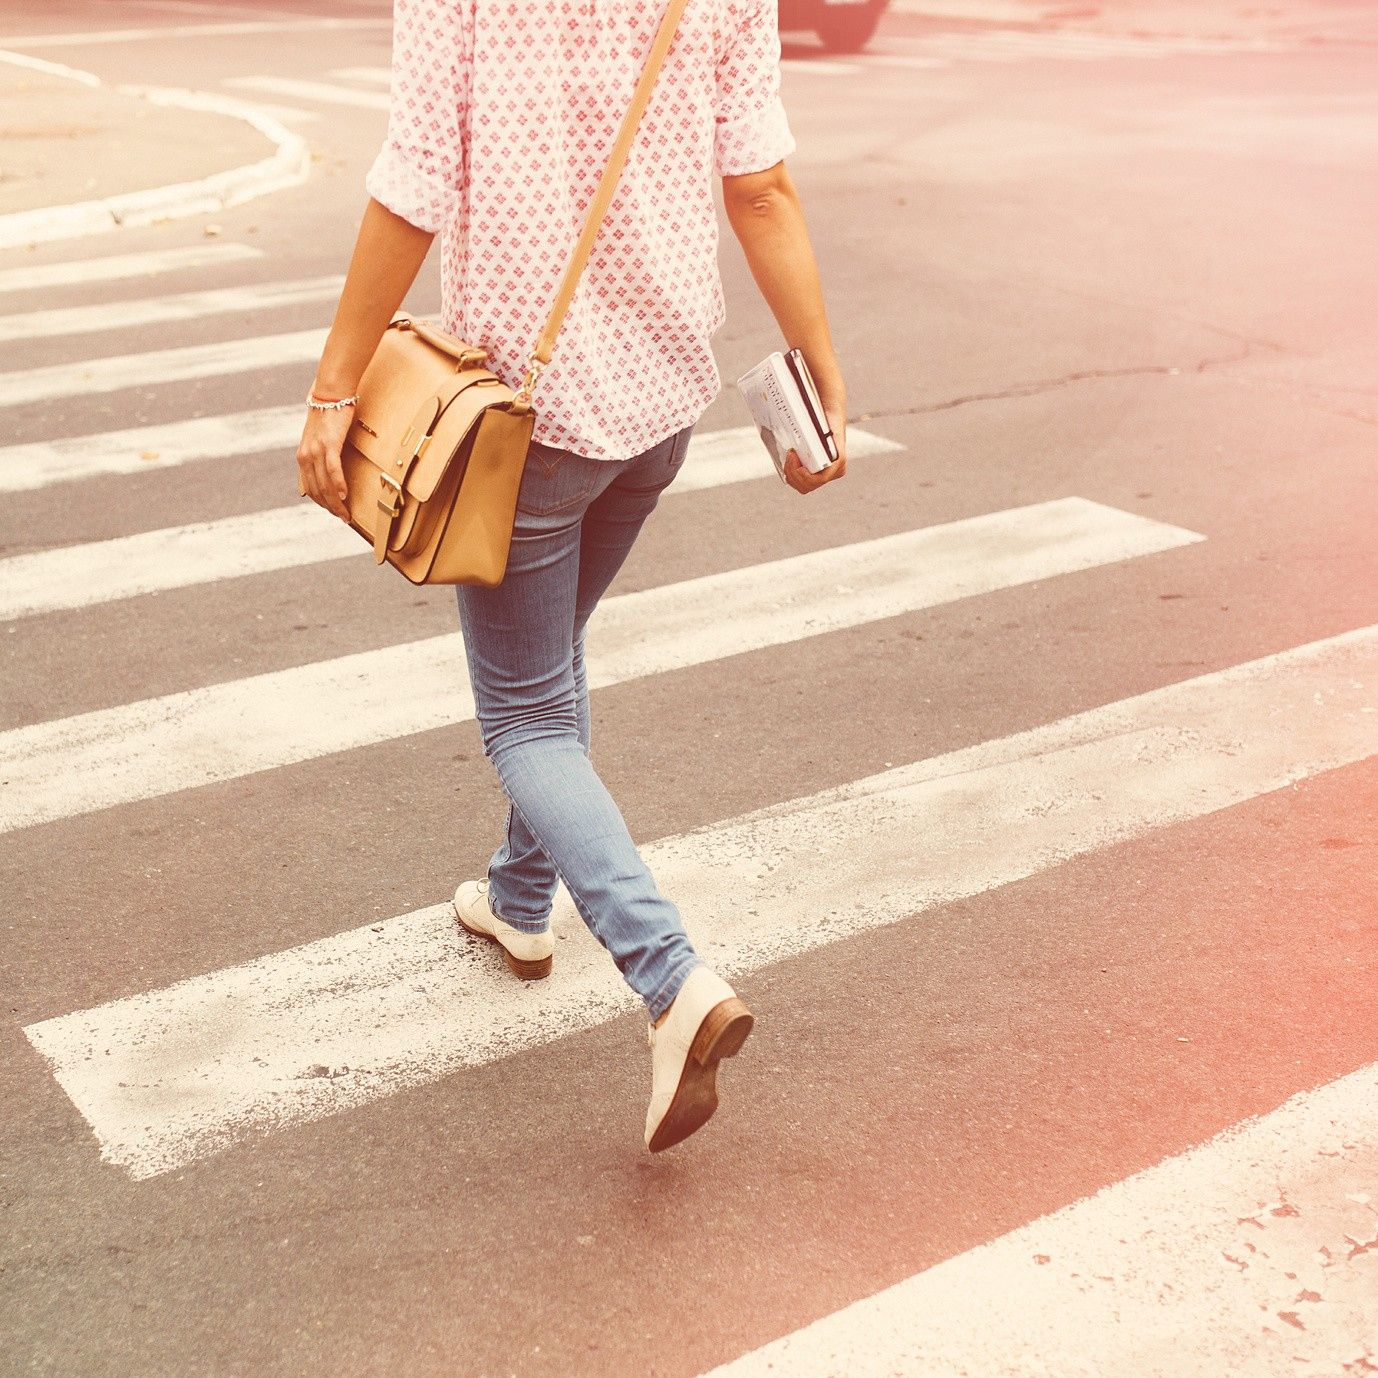 The Way You Walk Could Be Causing Depression